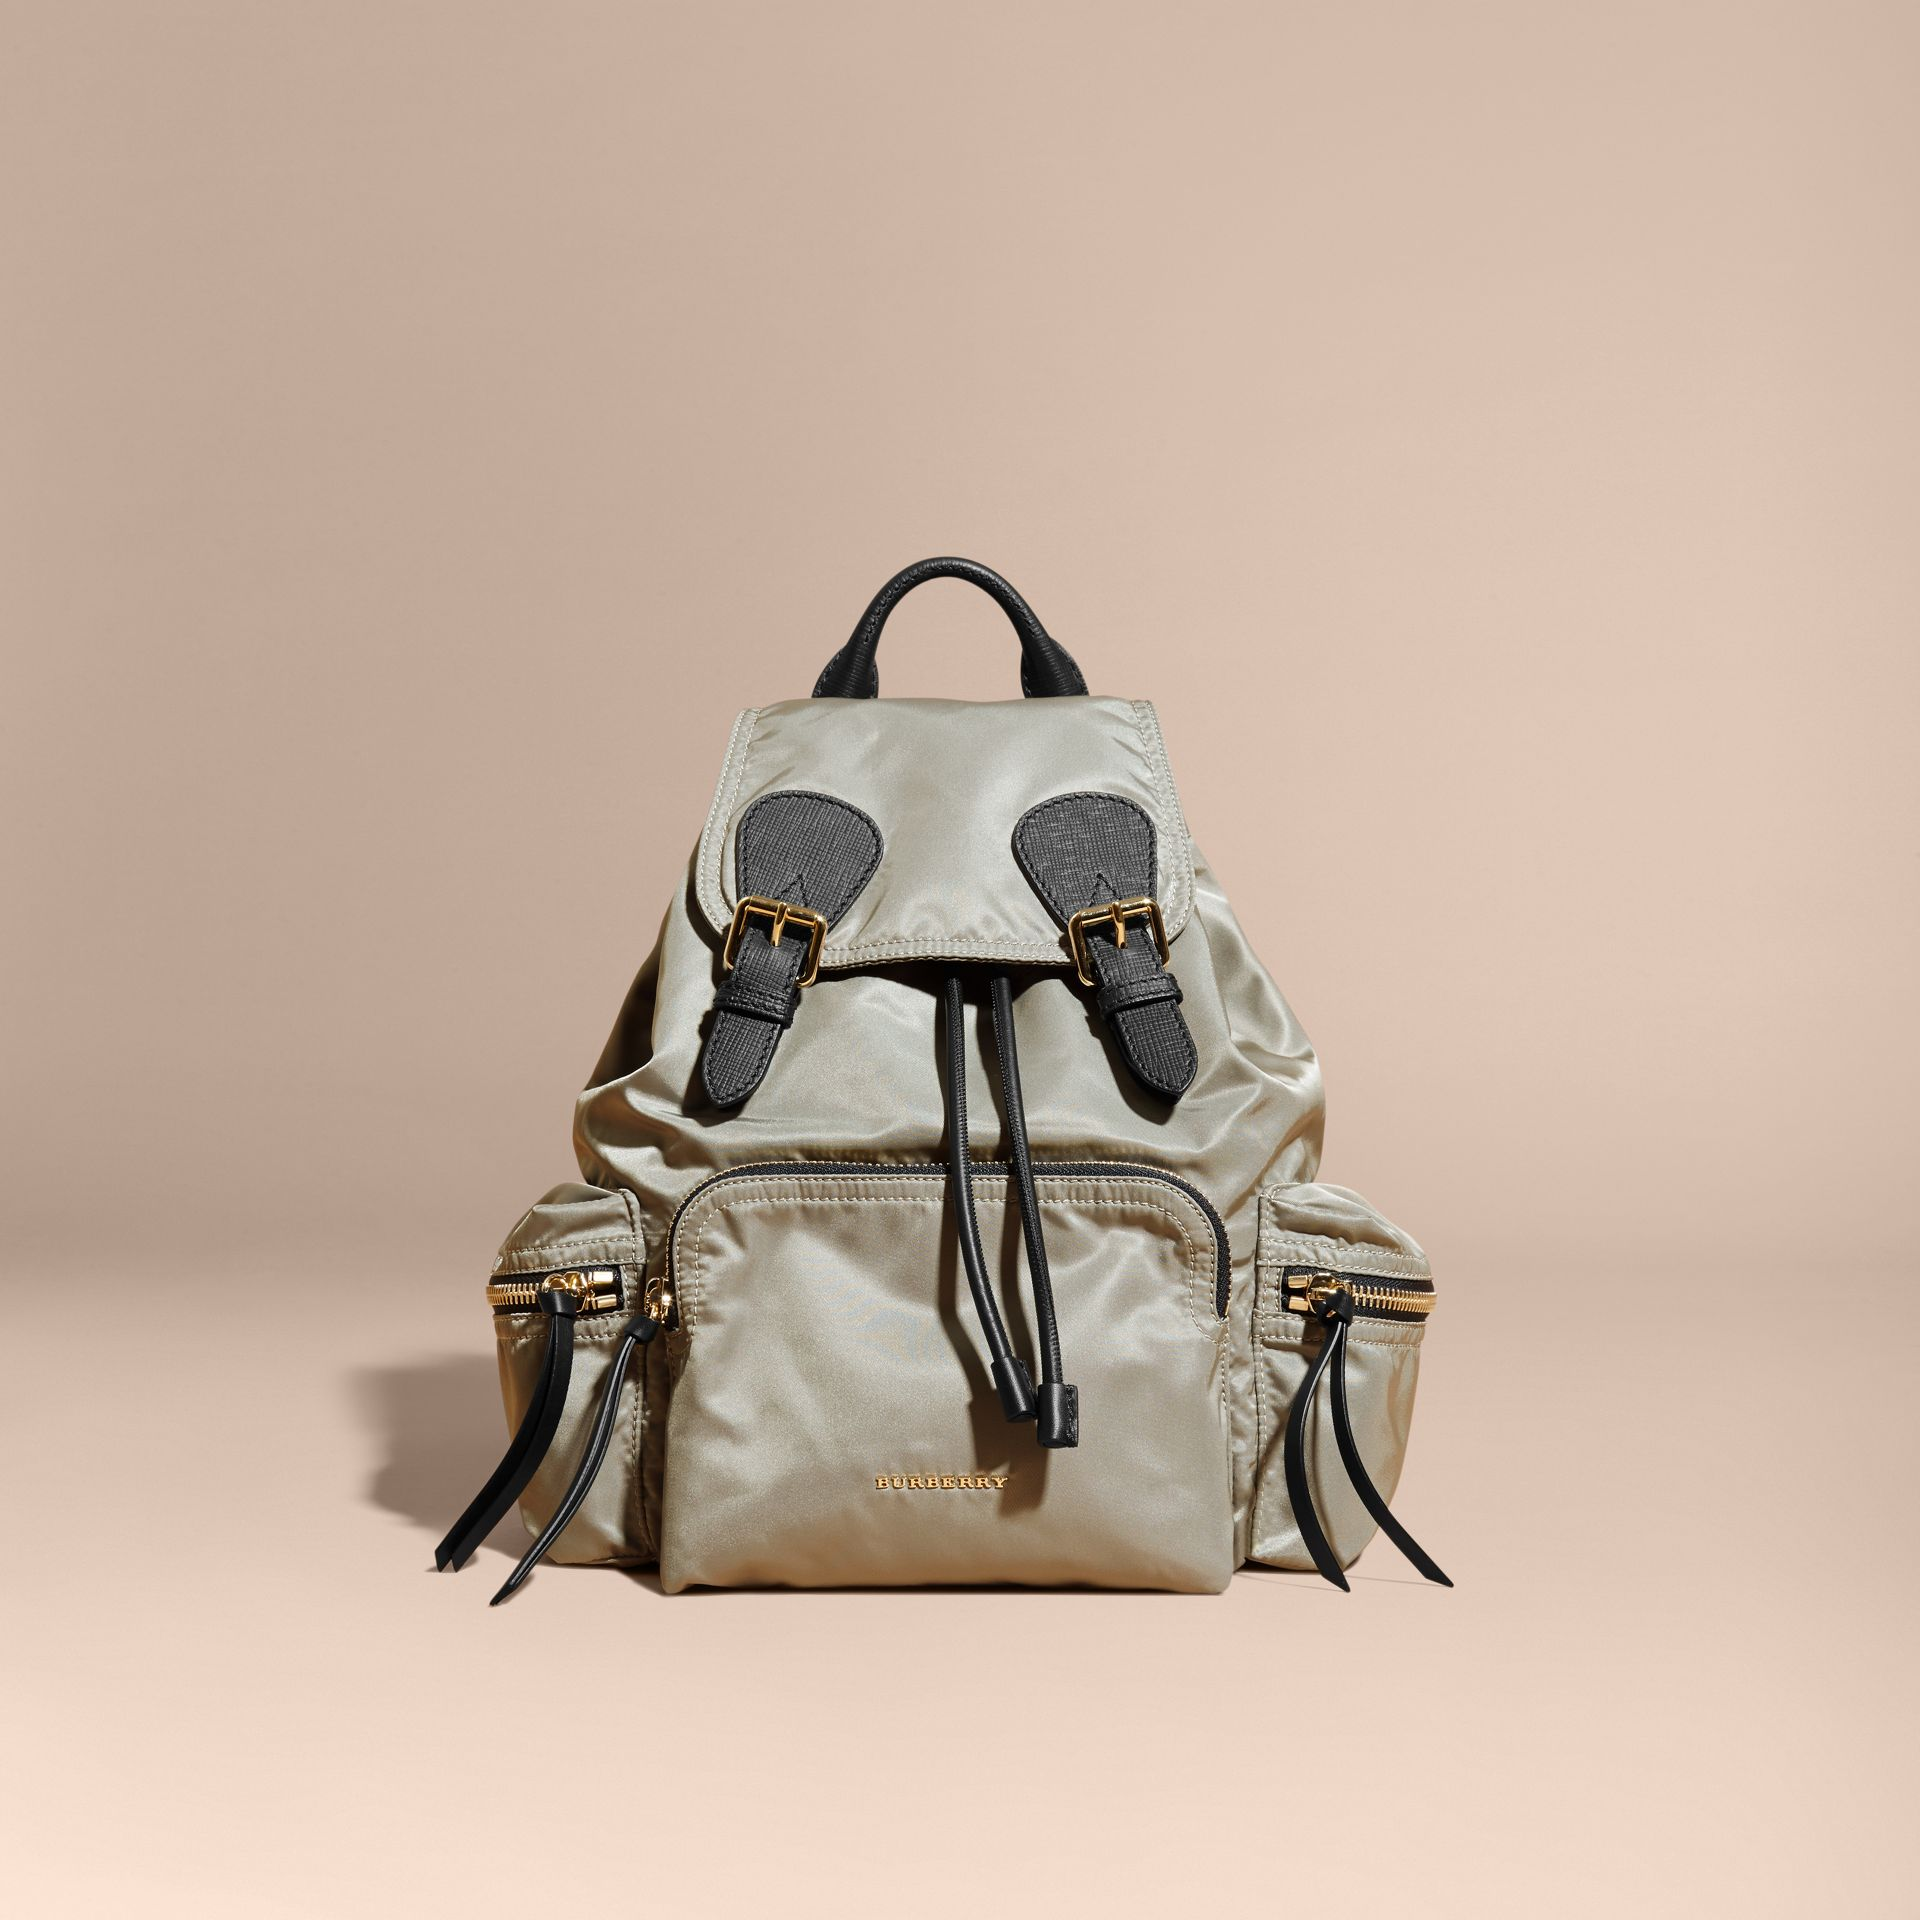 Thistle grey The Medium Rucksack in Technical Nylon and Leather Thistle Grey - gallery image 9